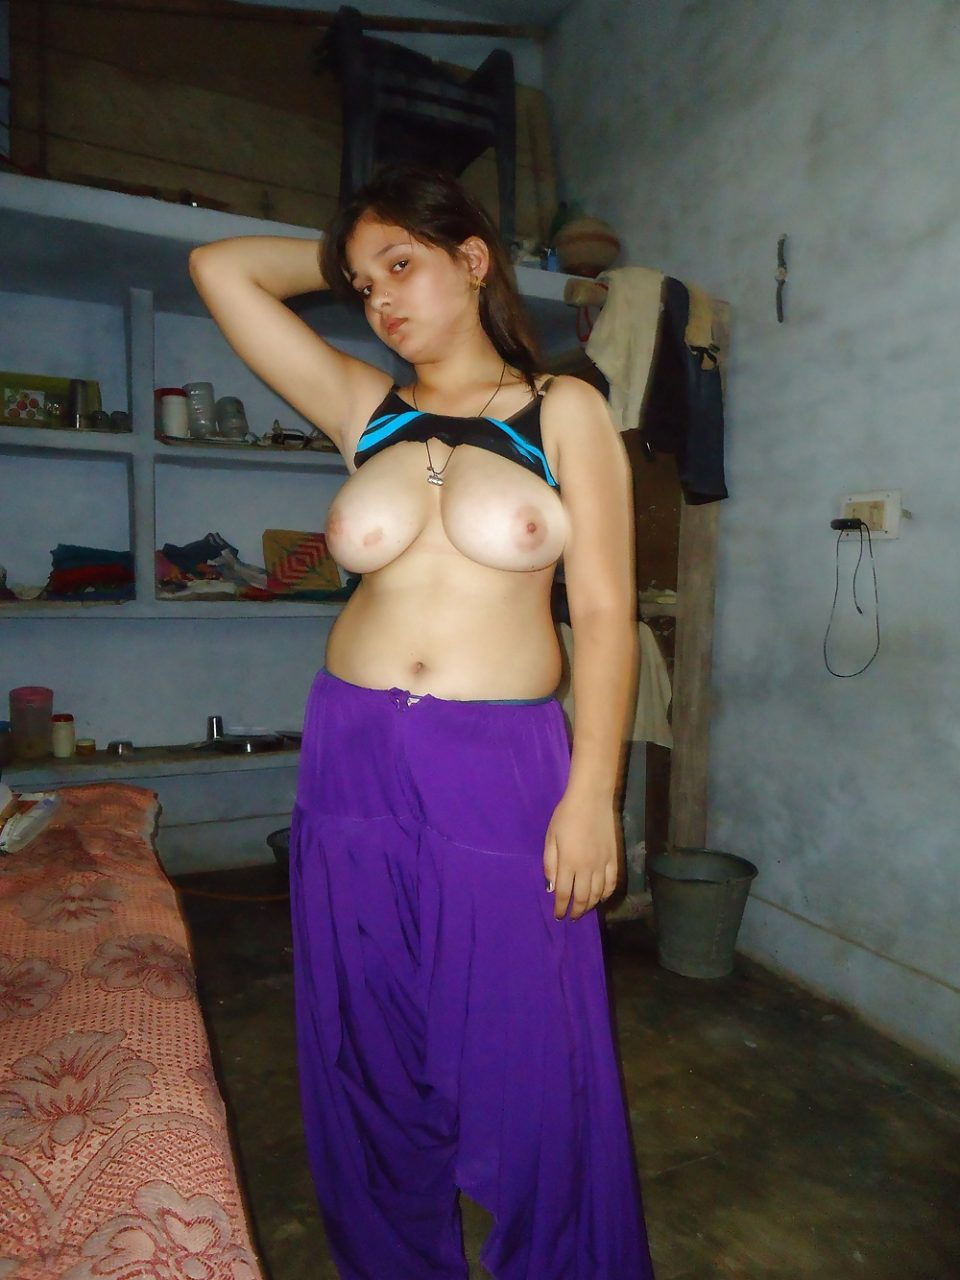 Authoritative Desi aunties nude delightful